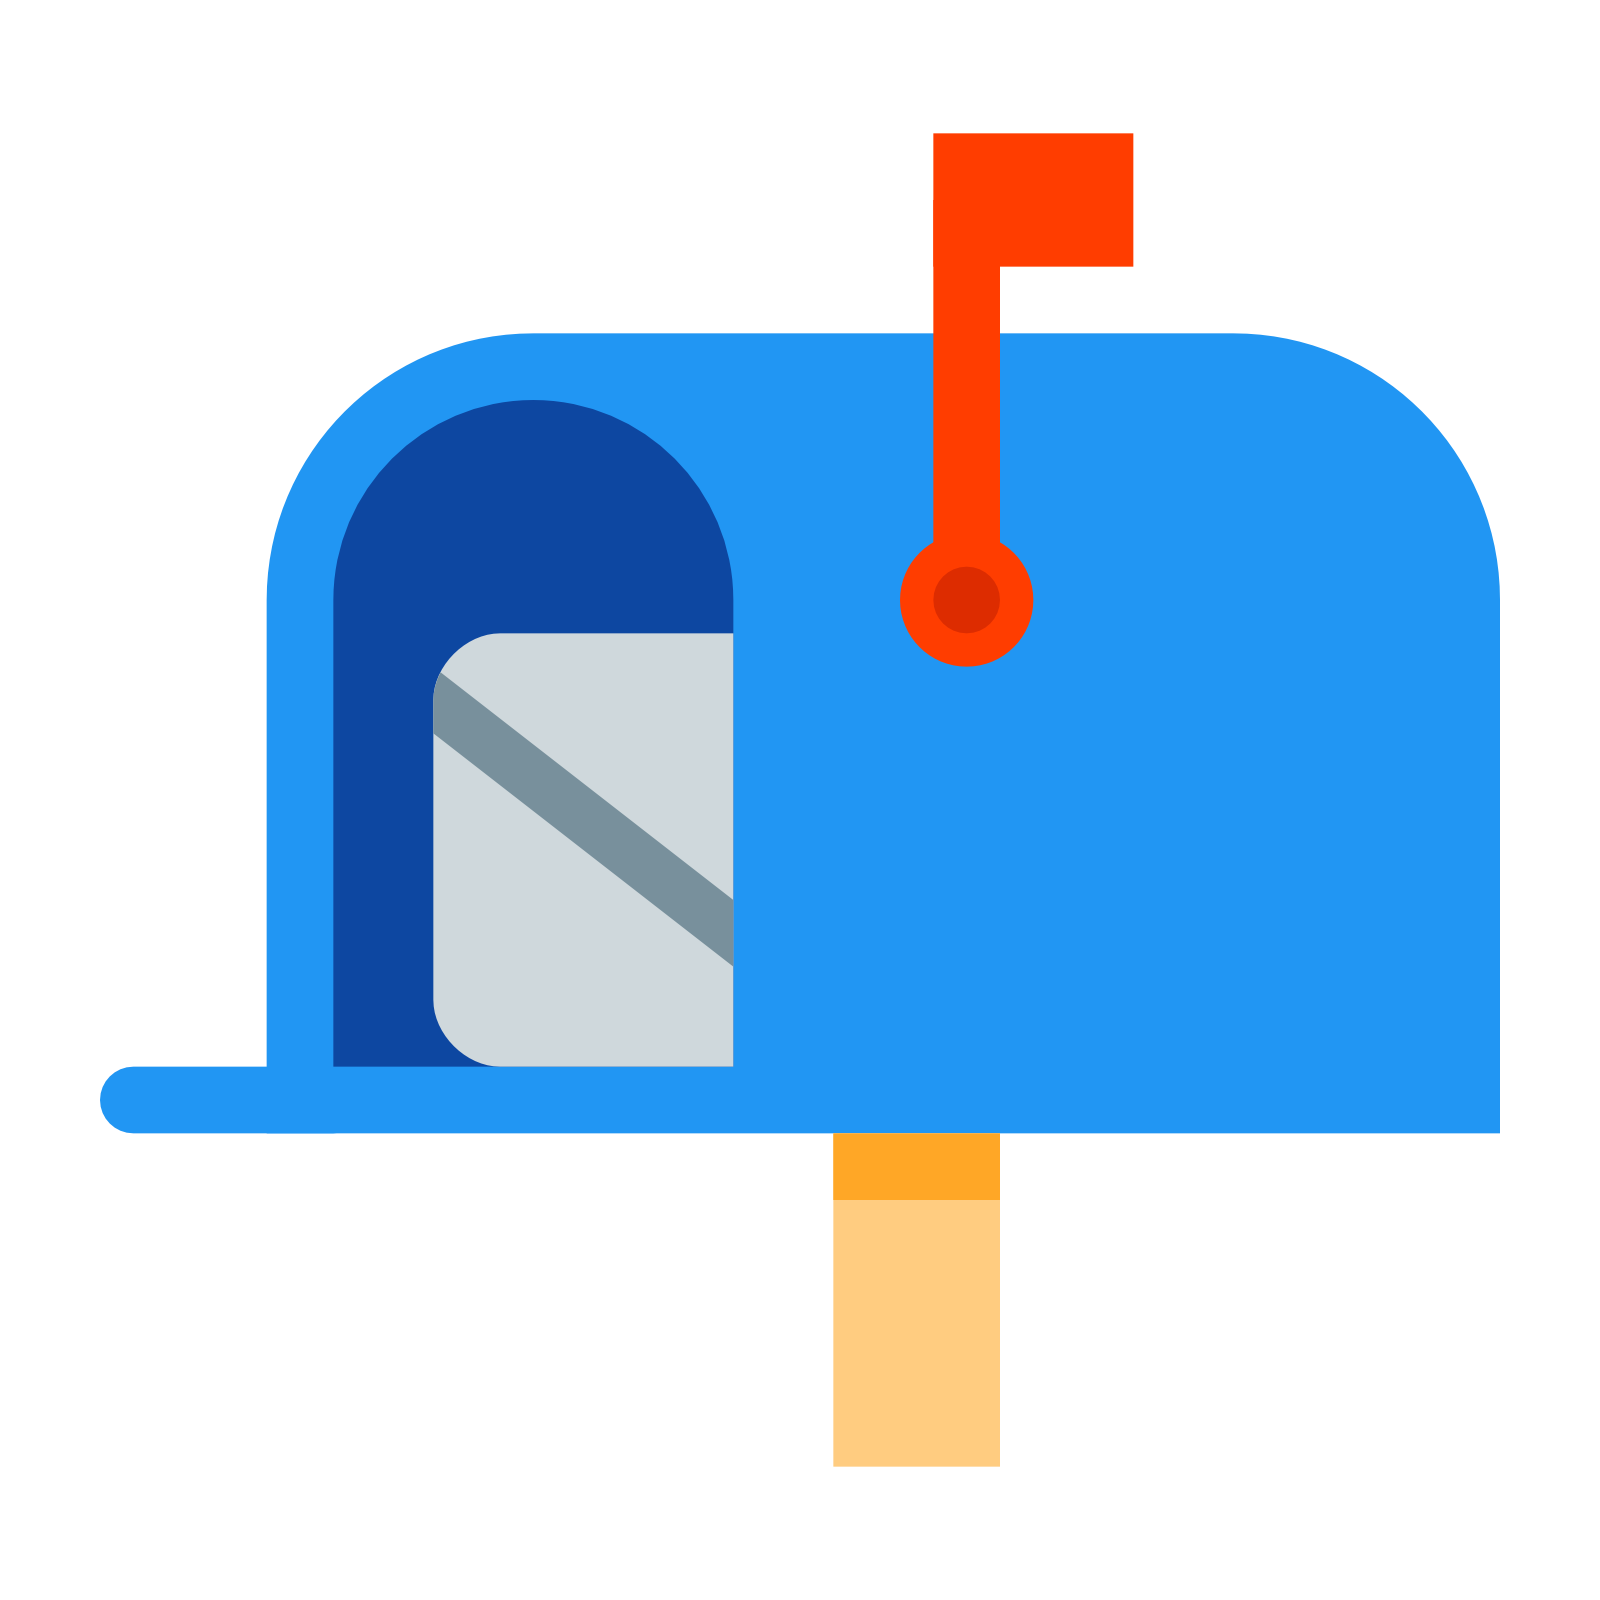 Mailbox vector. Image result for mail